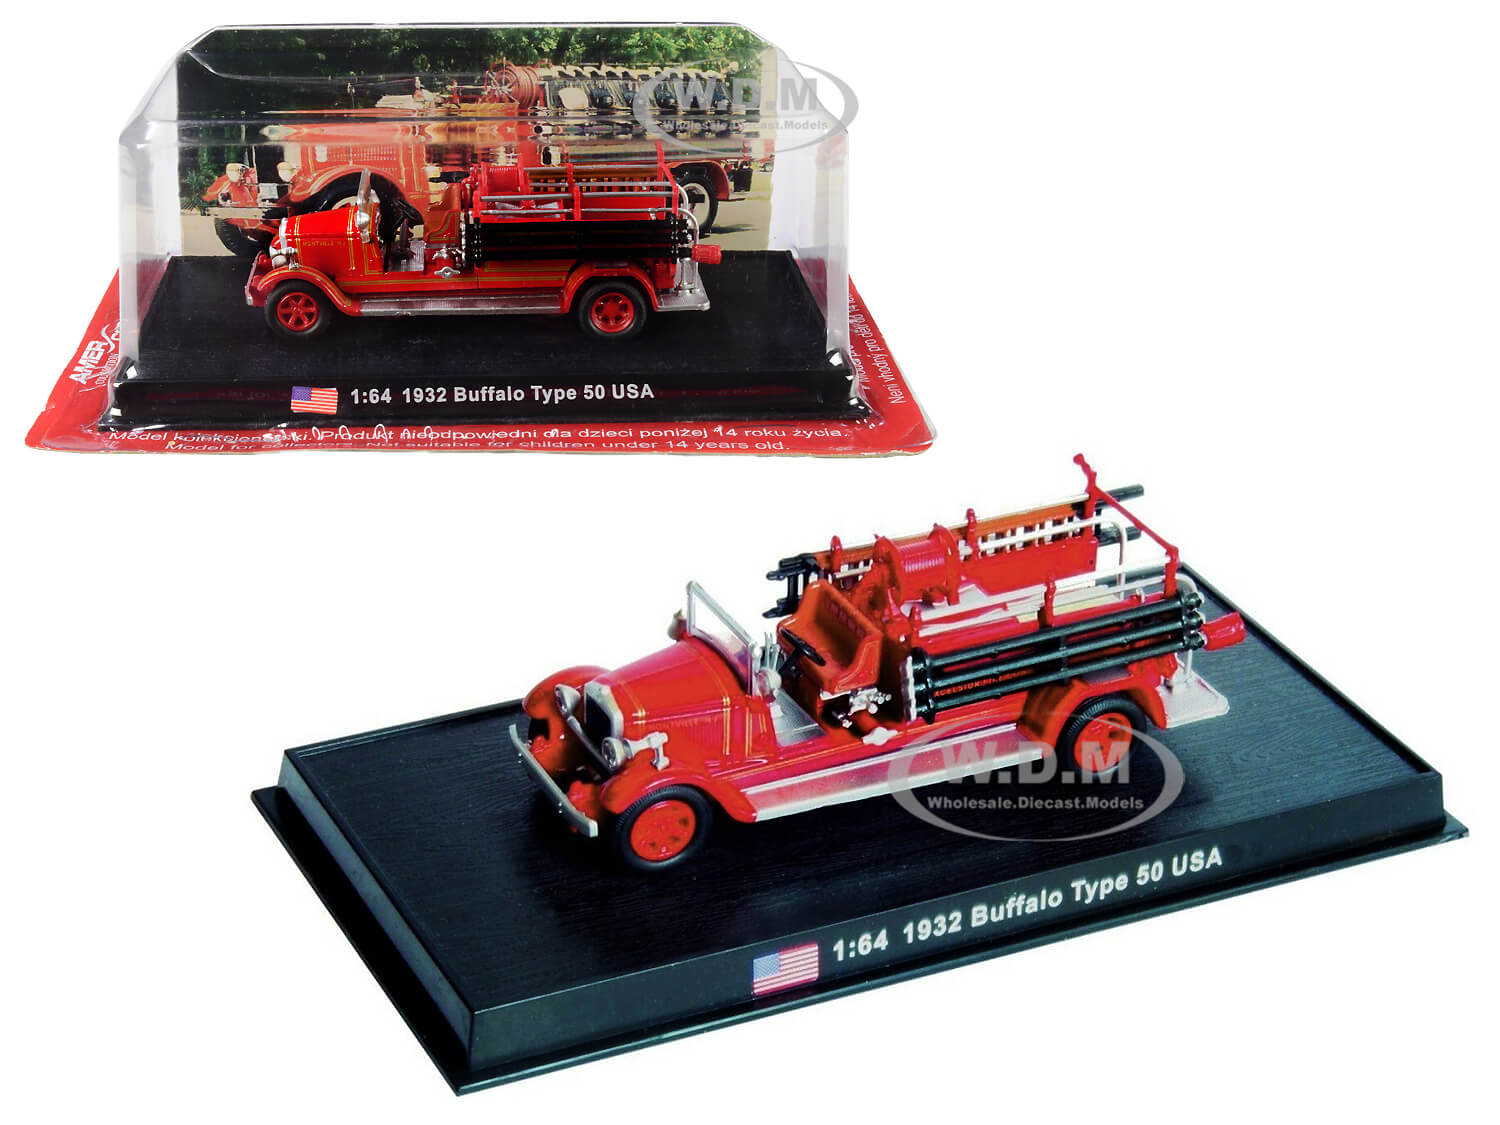 1932 Buffalo Type 50 Fire Engine (Montville New Jersey) 1/64 Diecast Model by Amercom